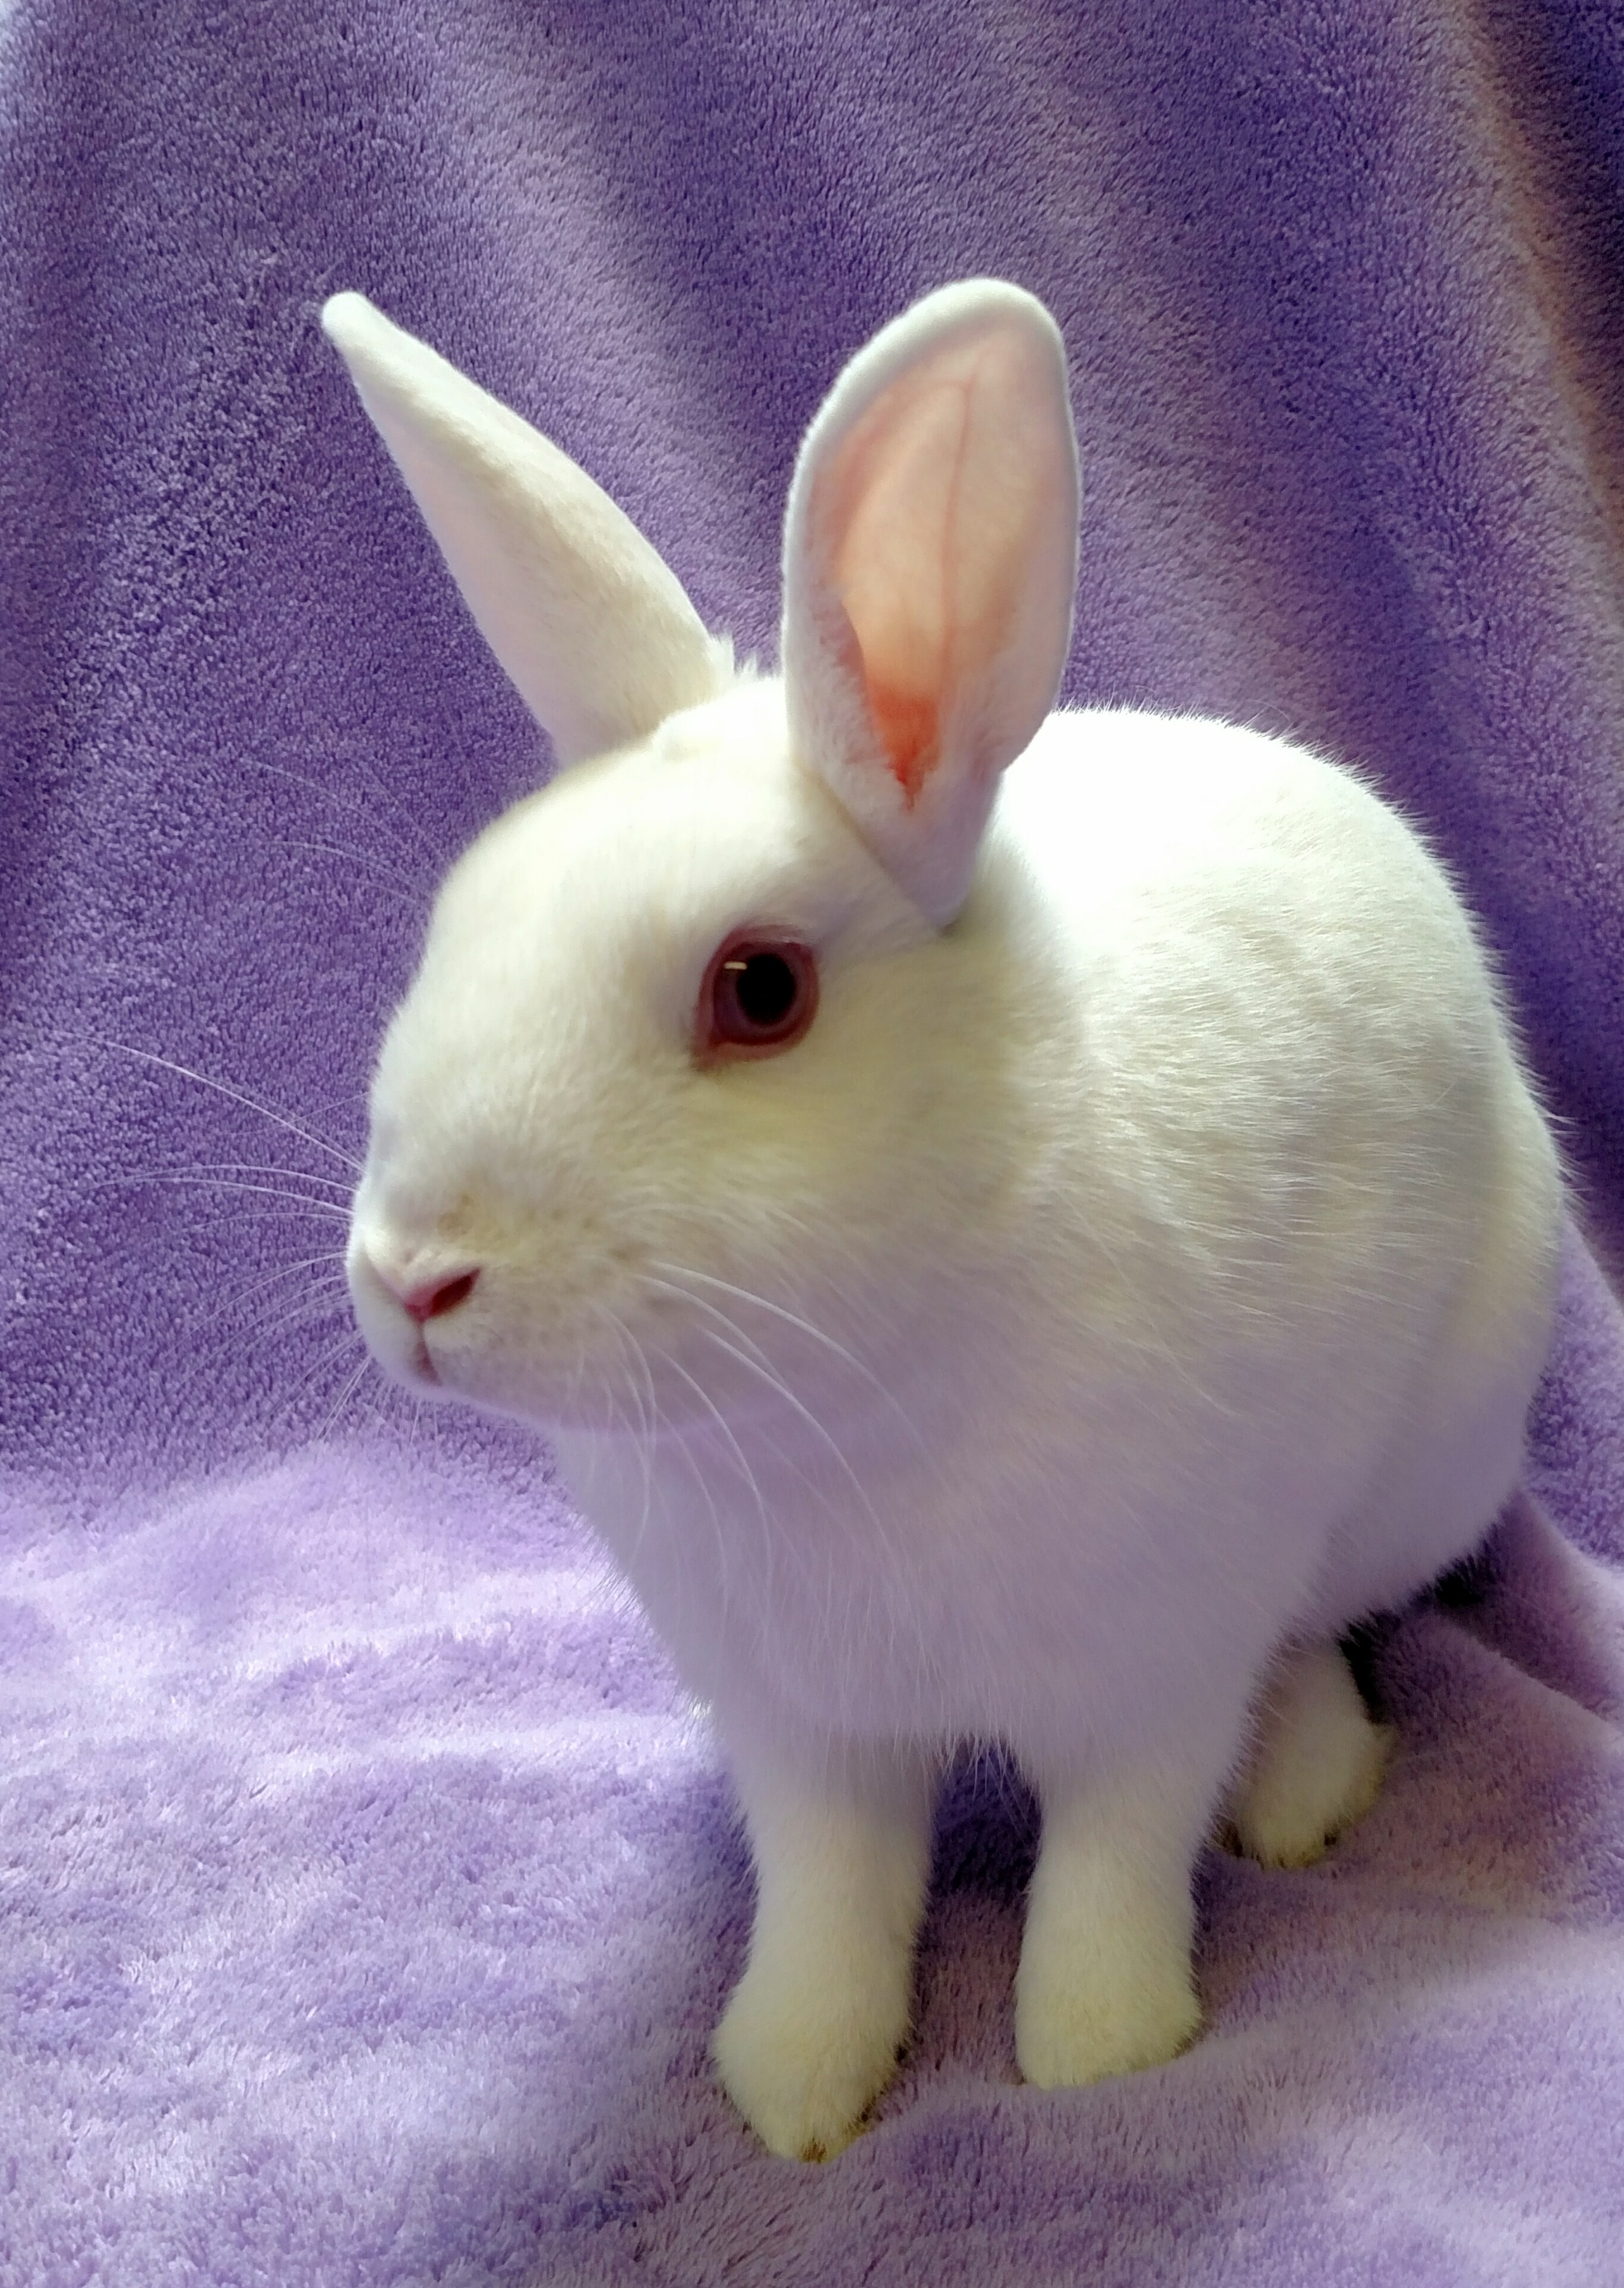 Cecily, is a 1-year-old rabbit looking for a forever home. Photo: Courtesy of the San Clemente/Dana Point